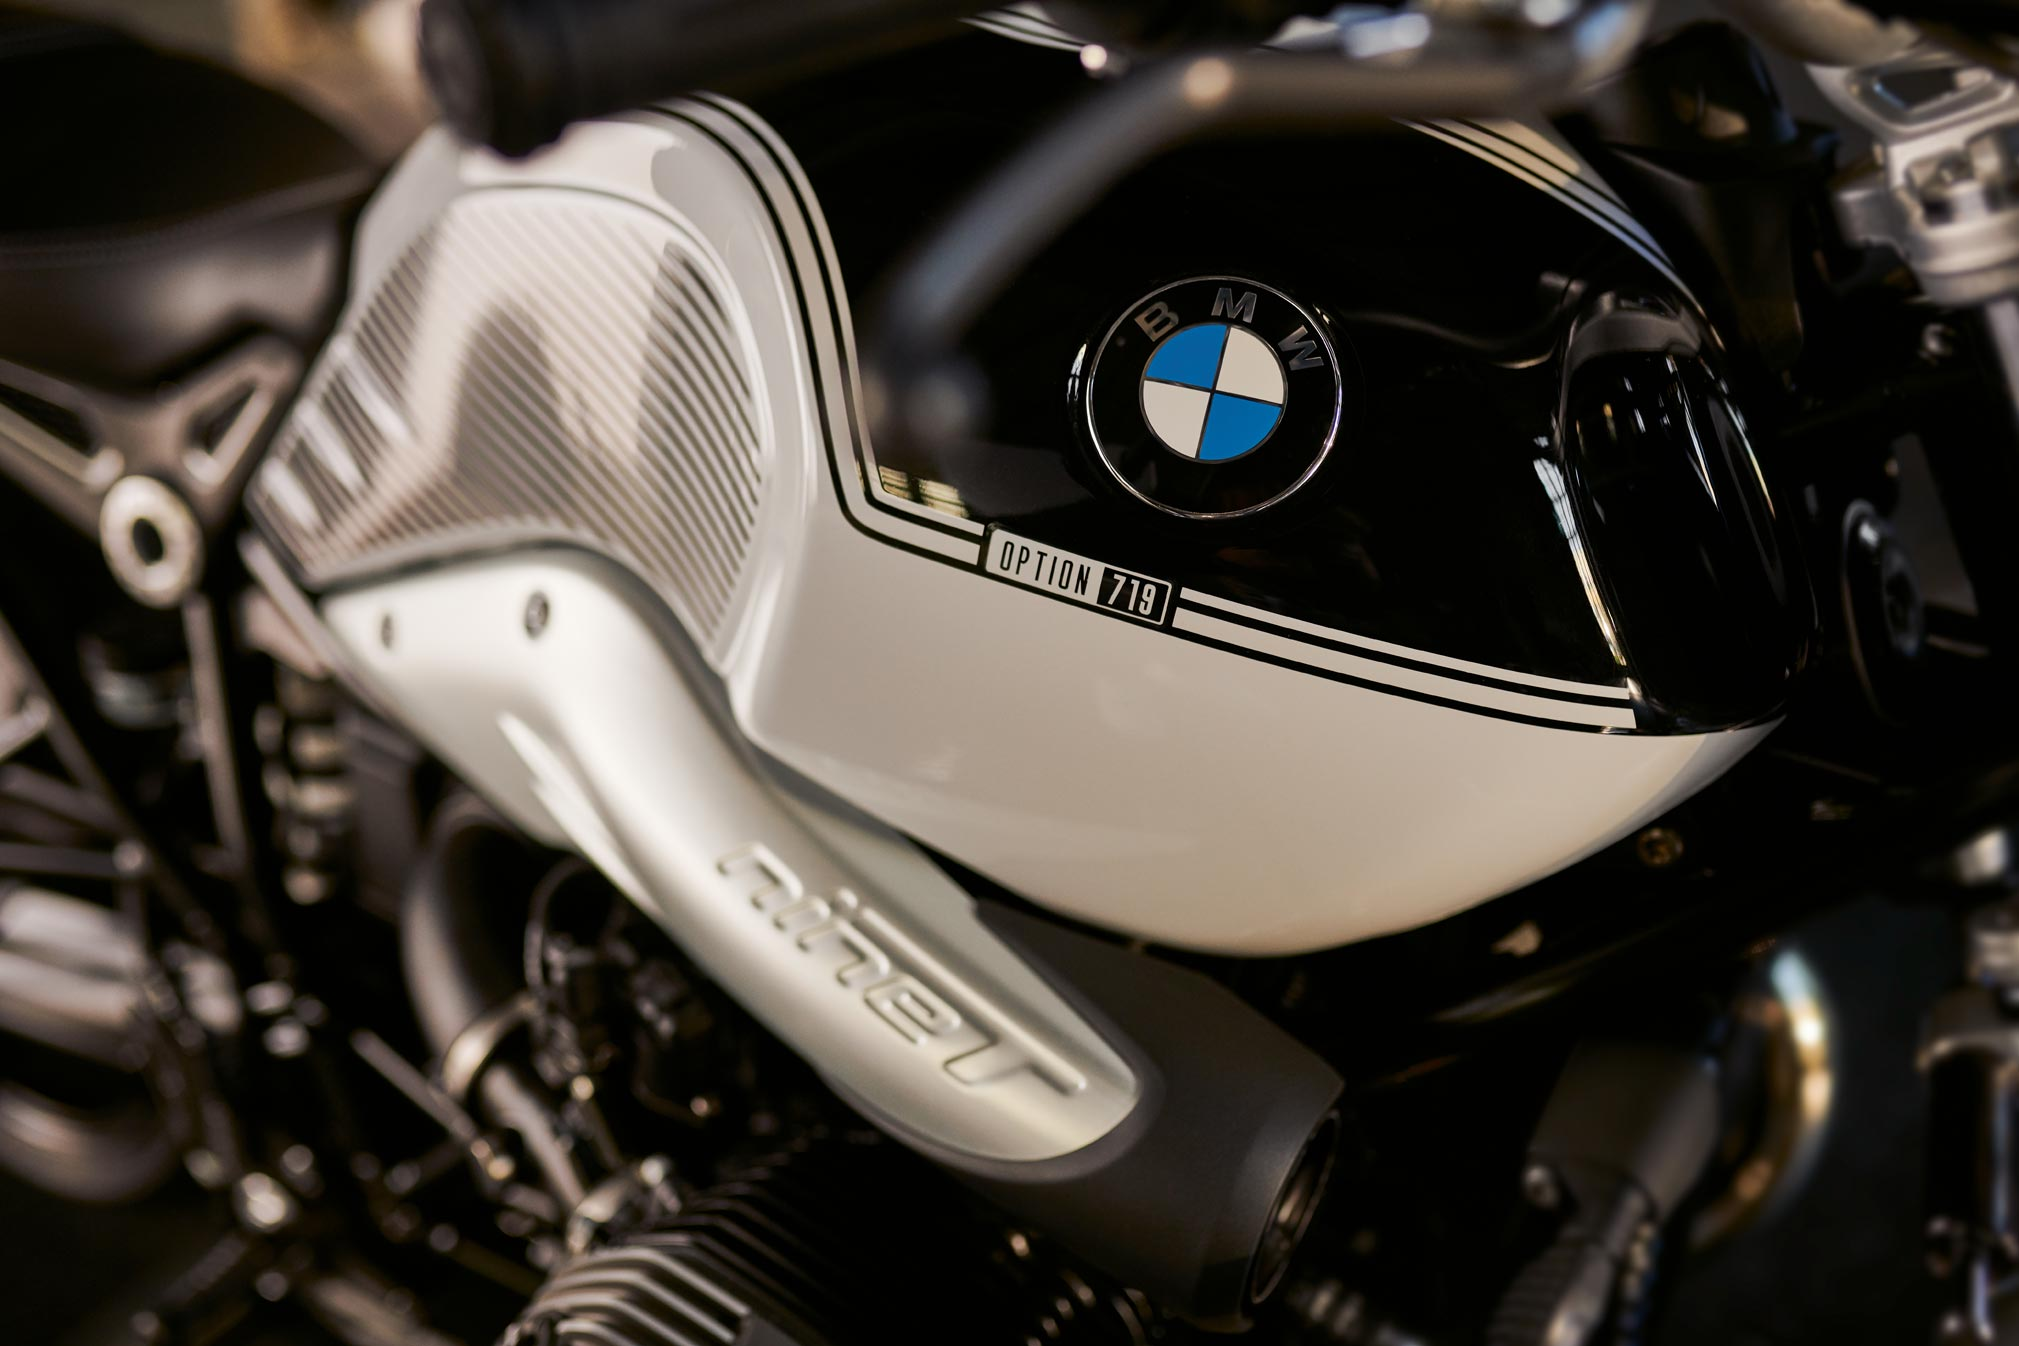 2019 BMW R nineT Pure Guide • Total Motorcycle